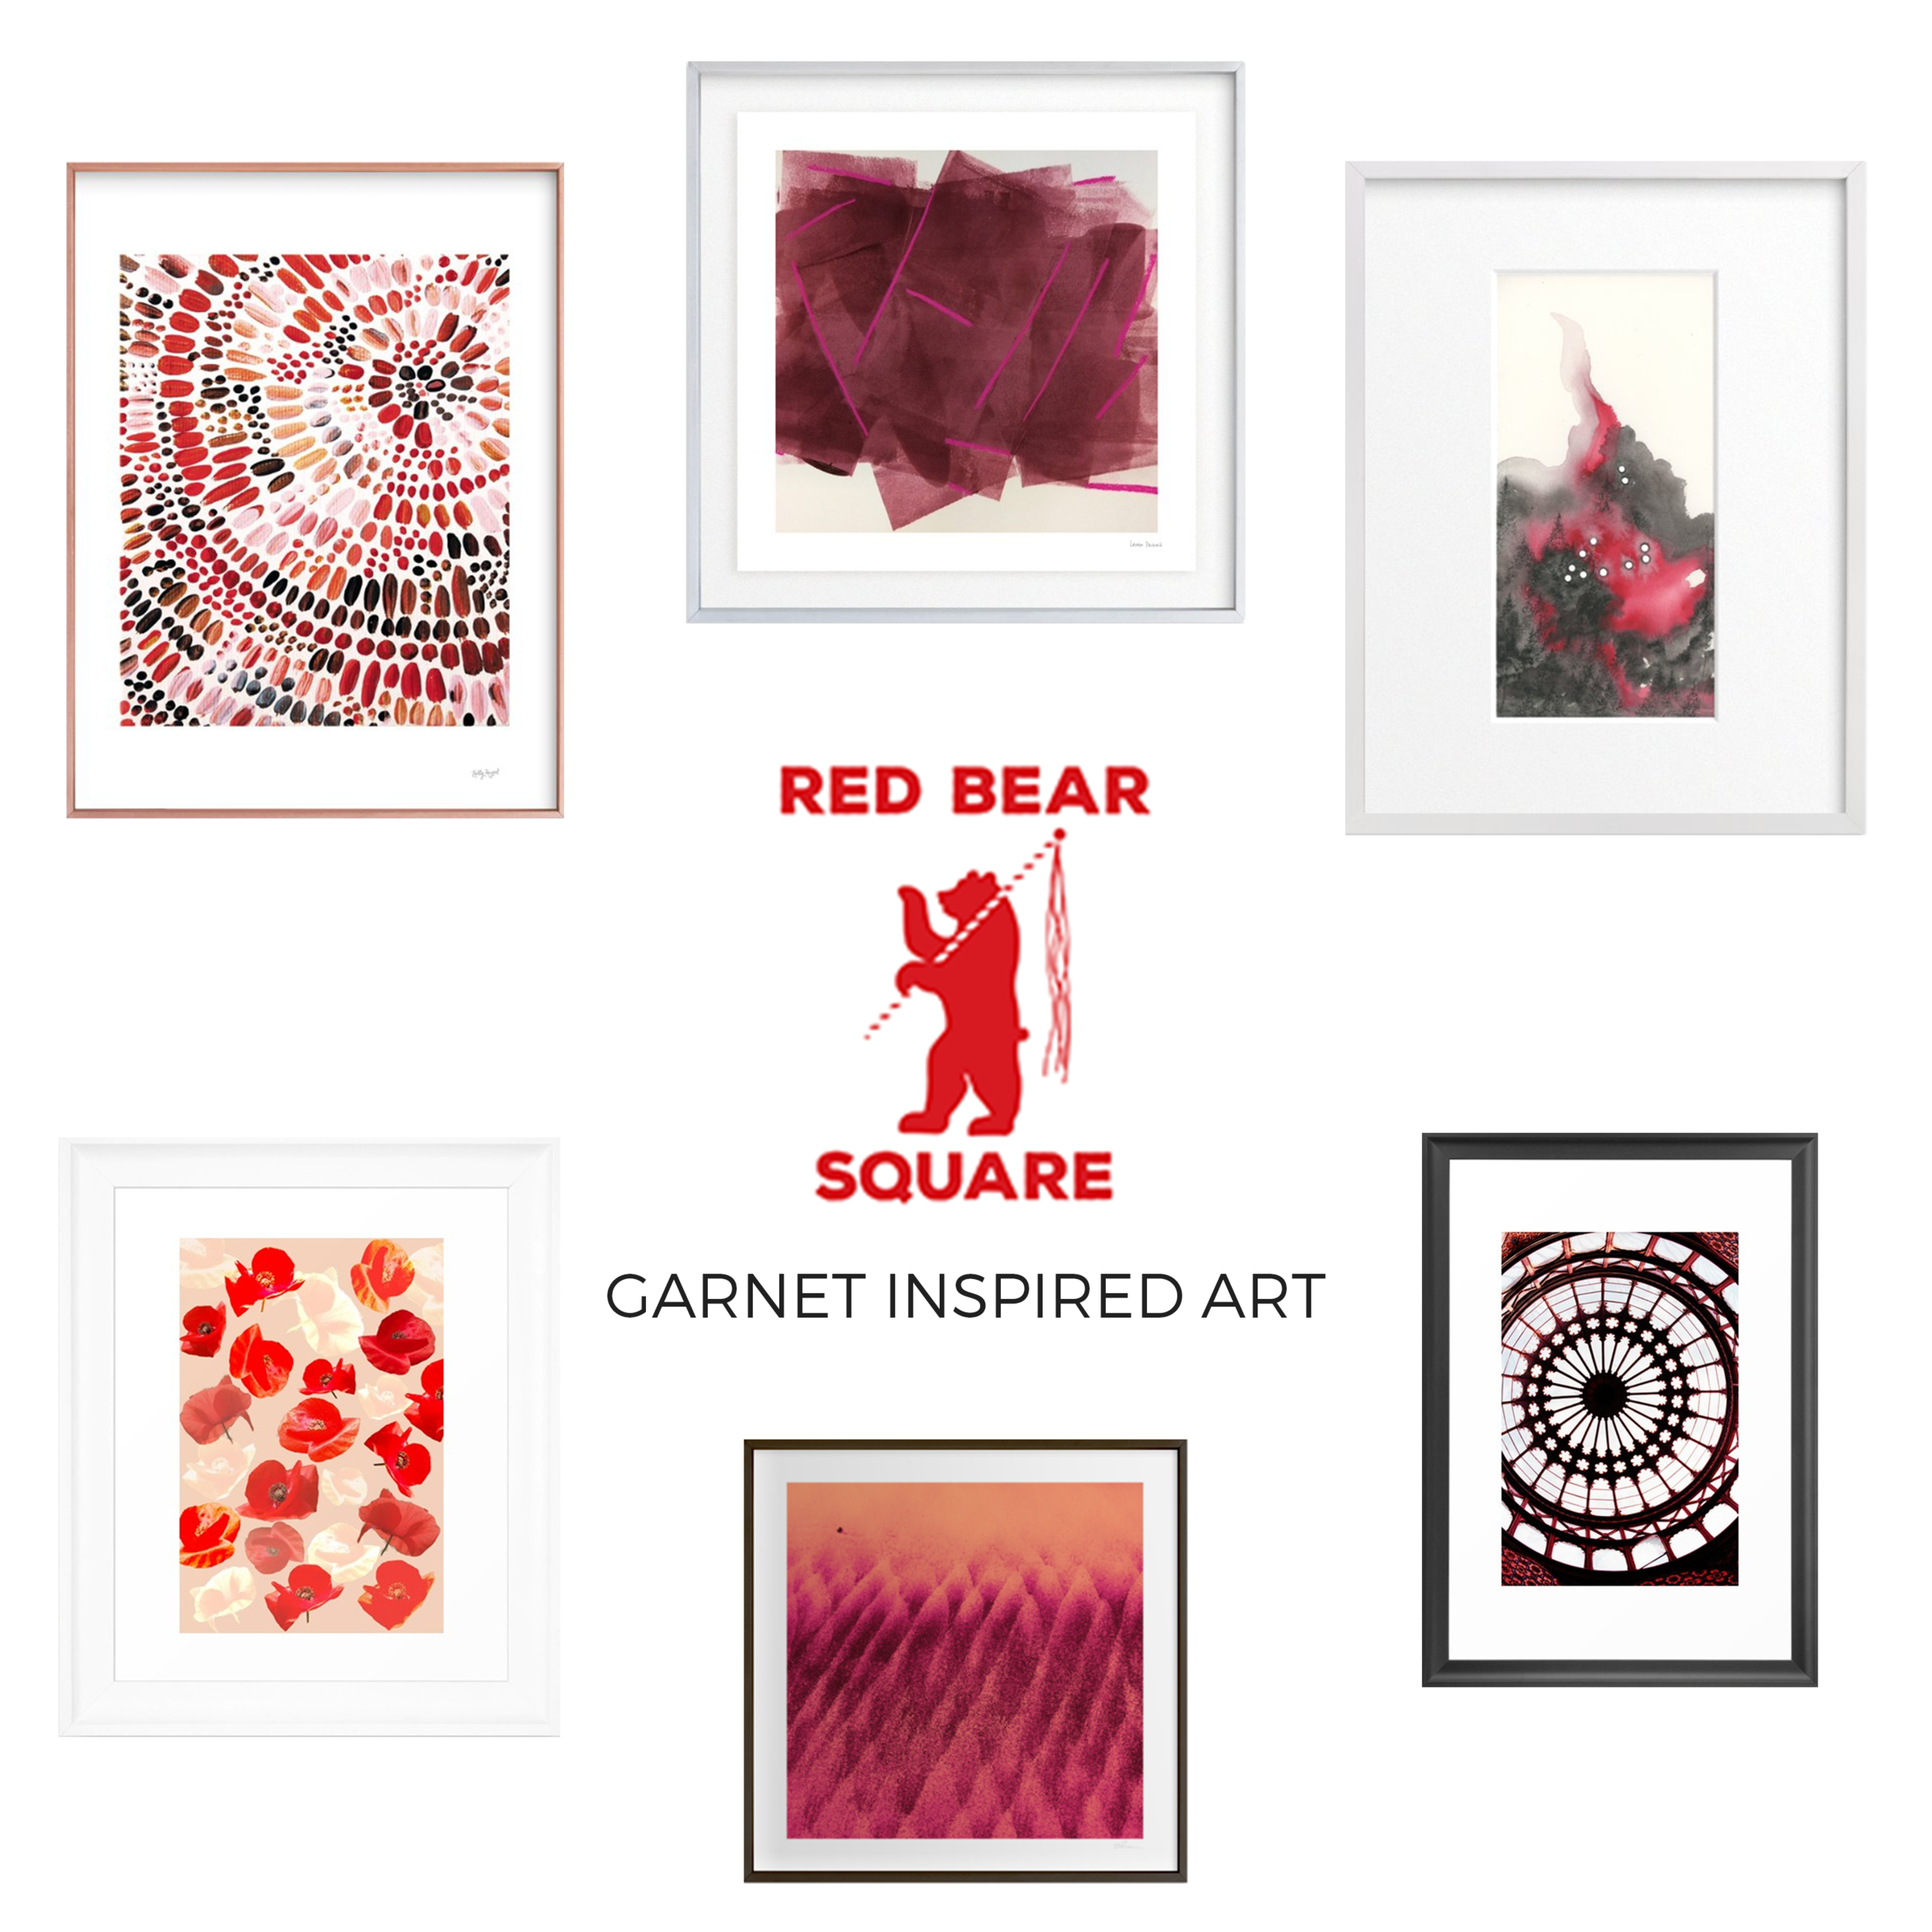 Red Bear Square Garnet Style Board.png